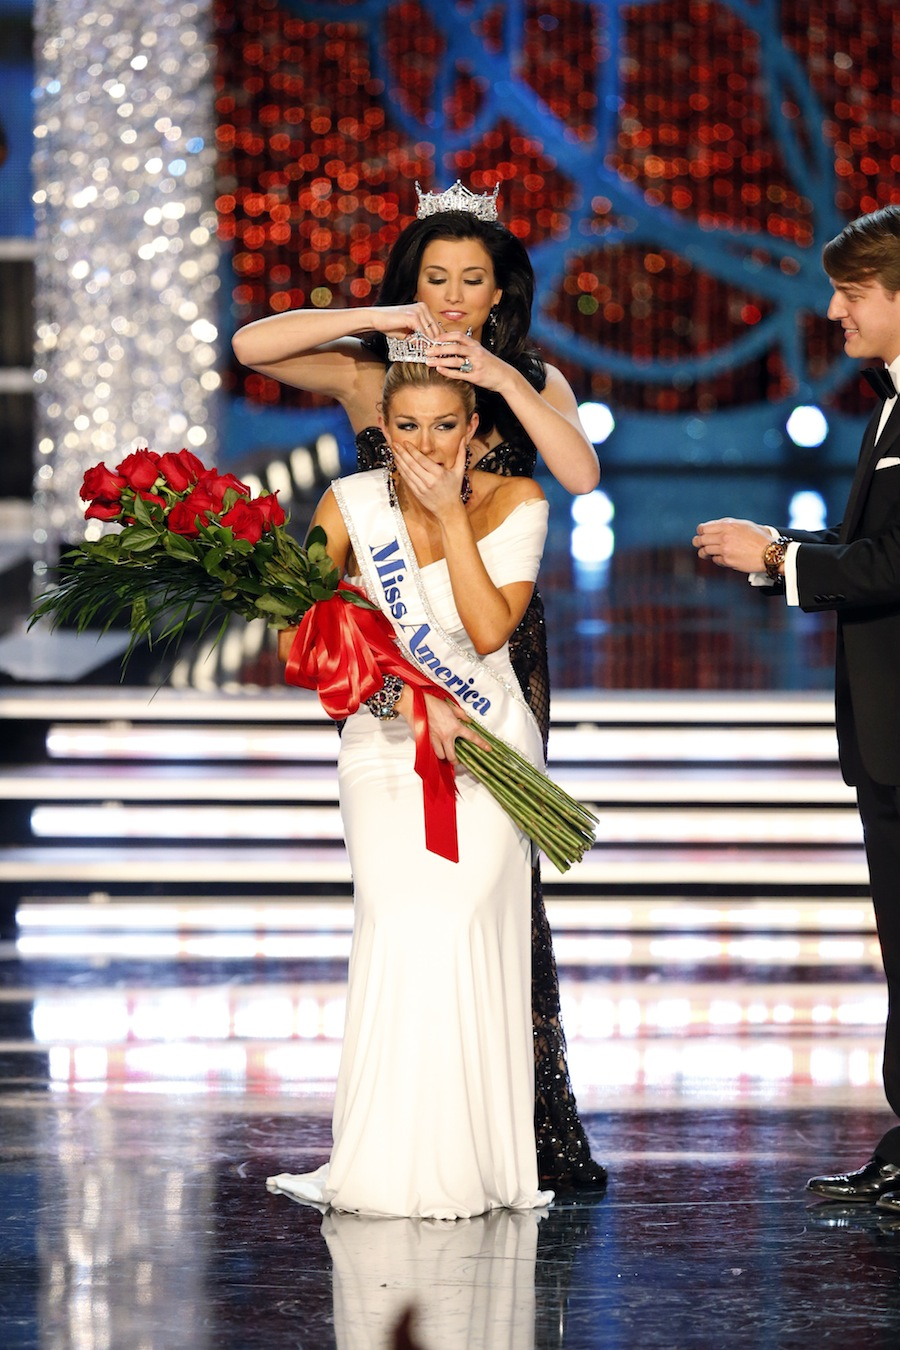 The 2013 Miss America Competition: Miss New York Mallory Hagan is crowned Miss America live Saturday, Jan. 12, on ABC. (photo by Craig Sjodin/ABC)